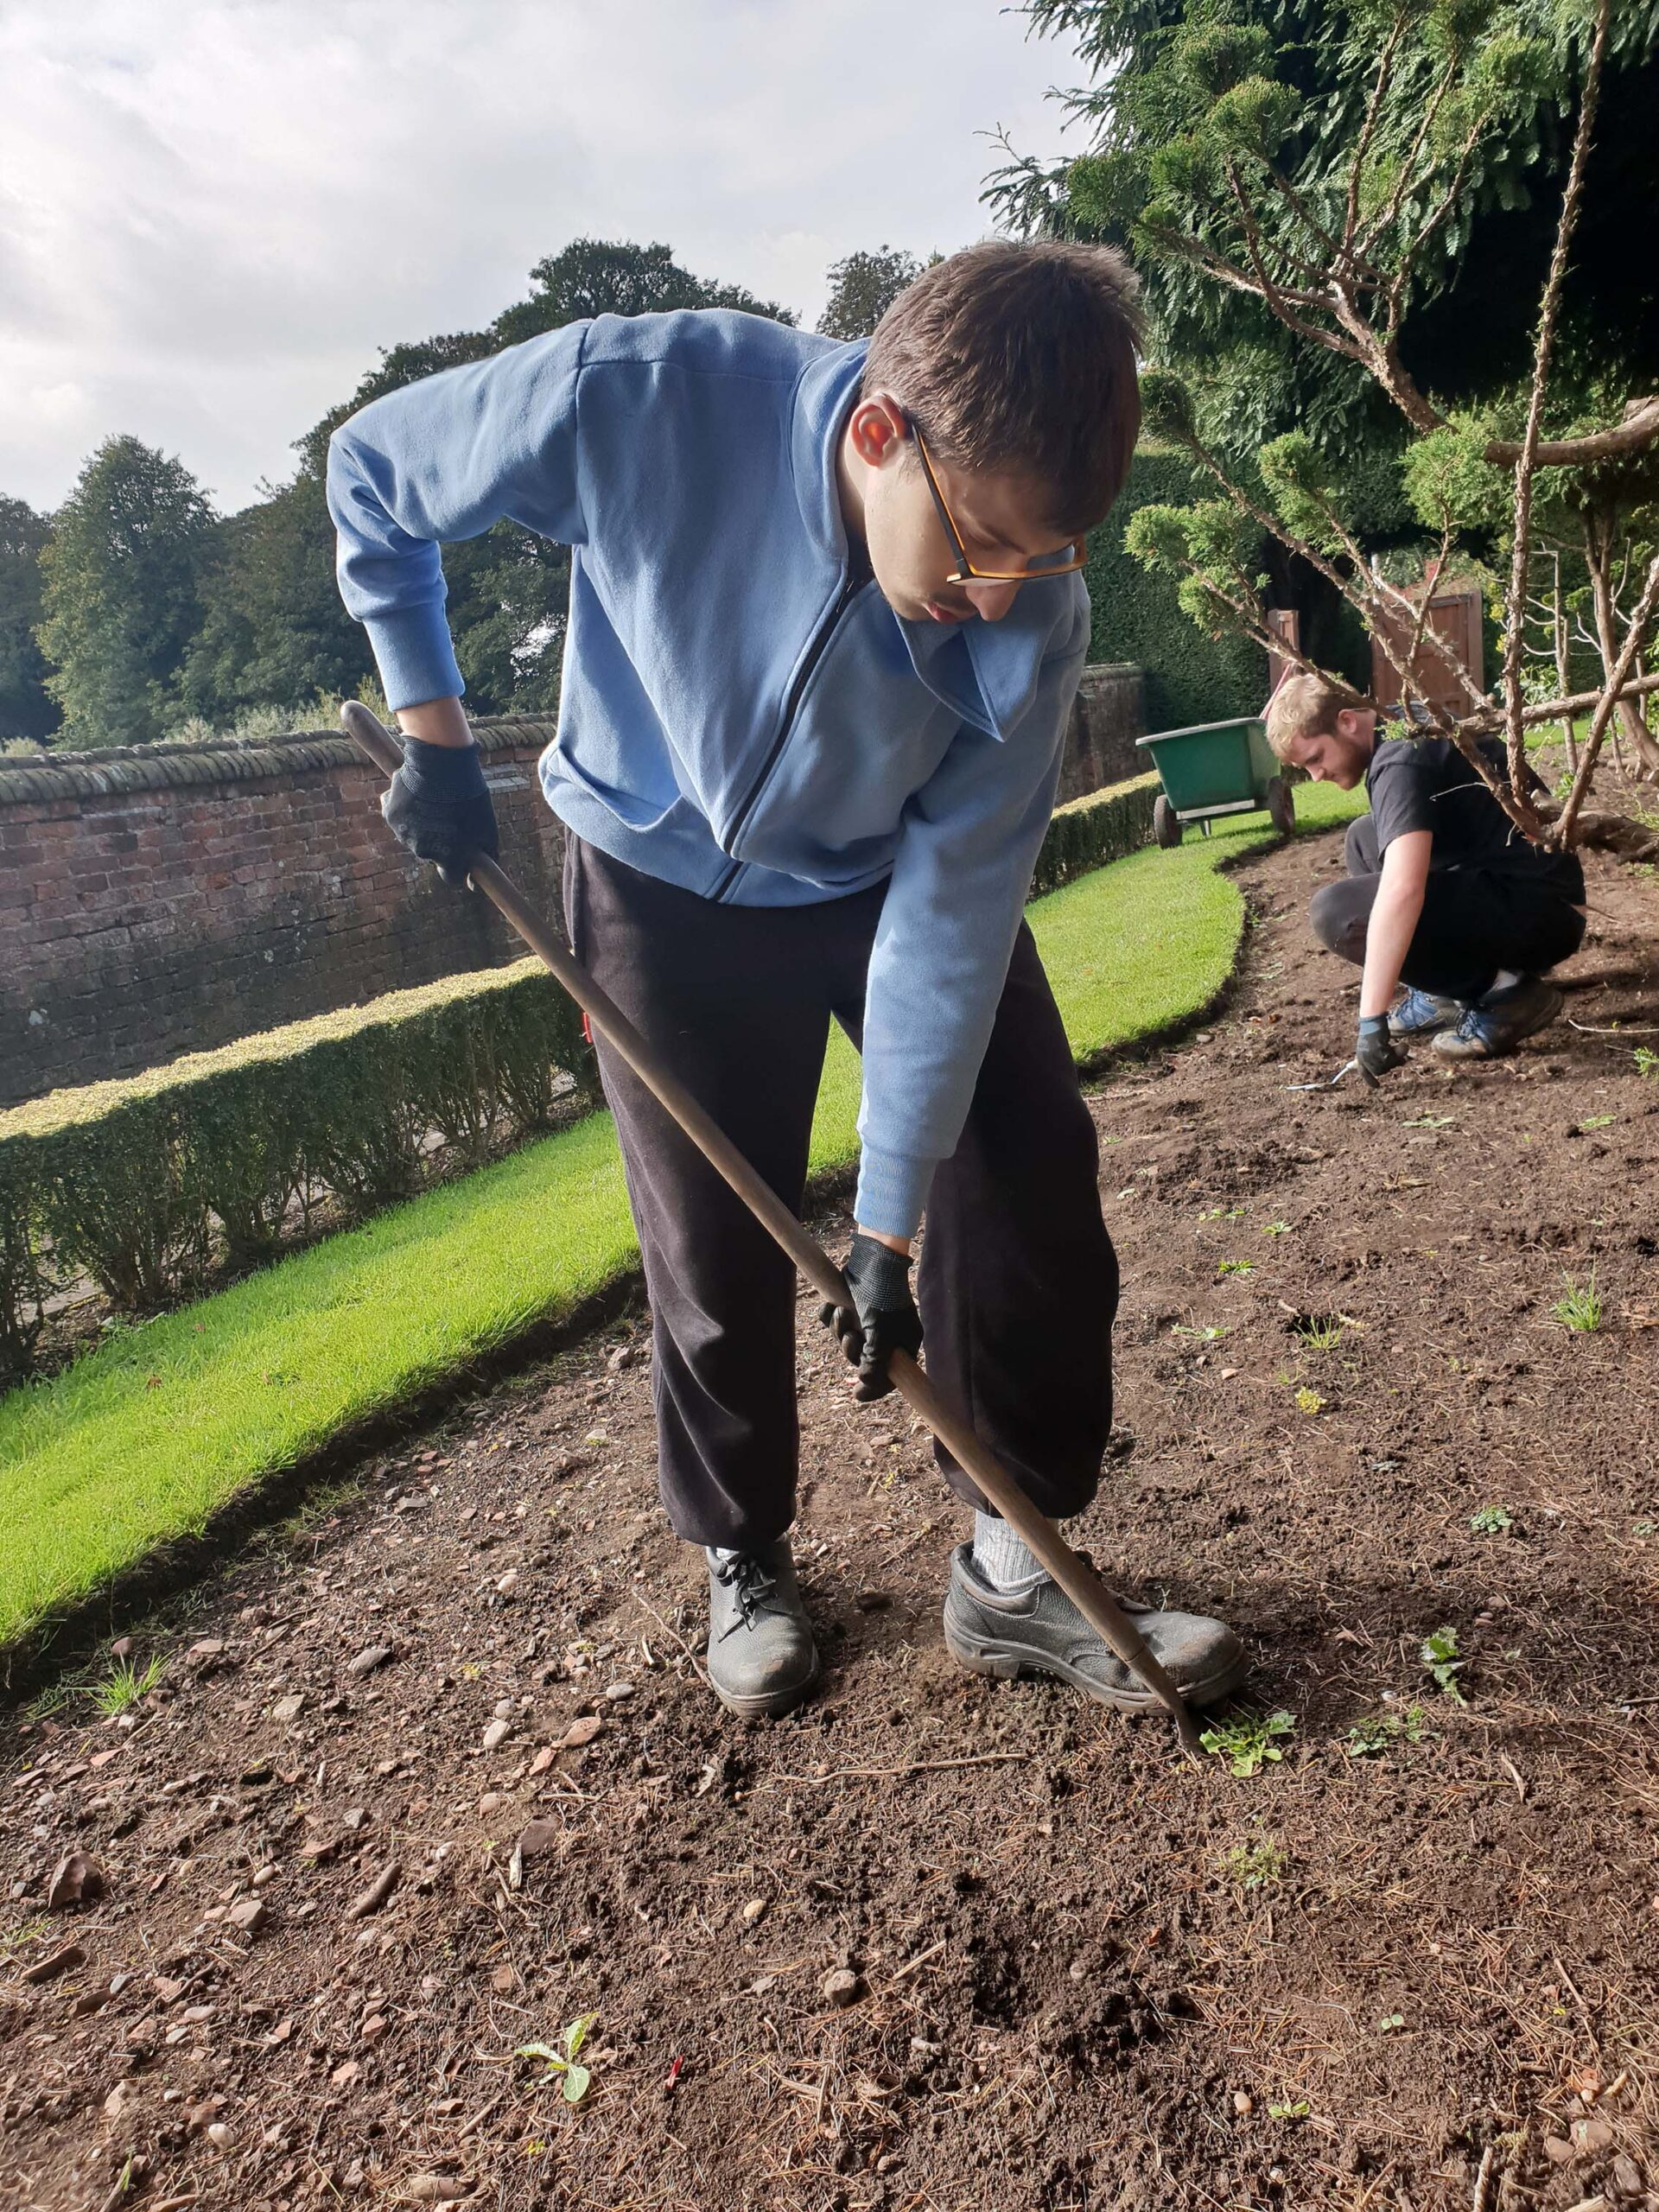 A learner uses a spade to dig in the ground during landscaping work